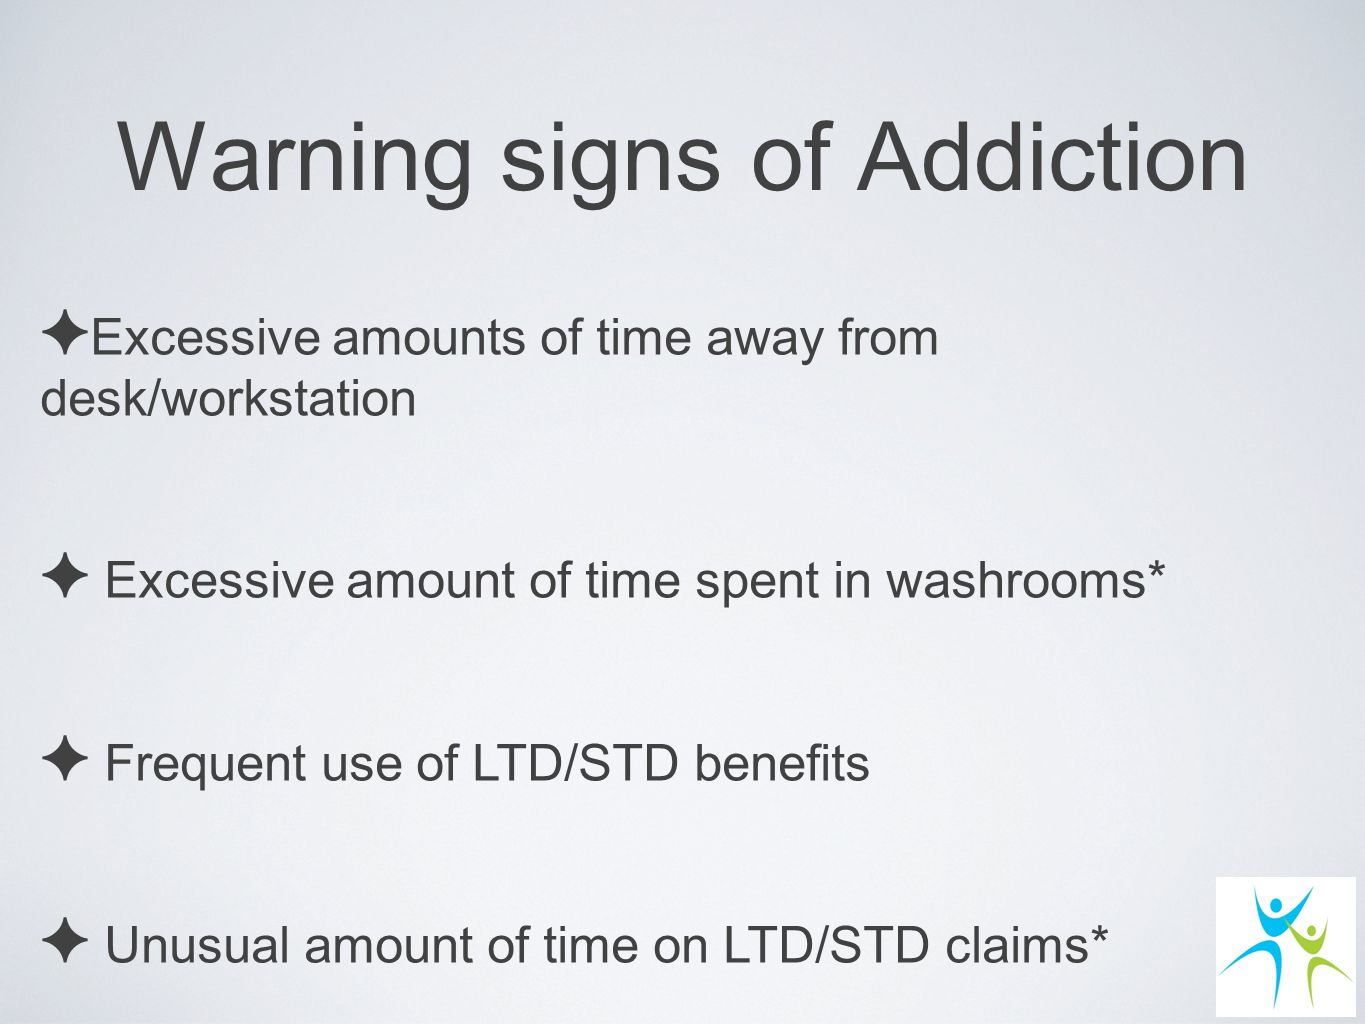 Warning signs of Addiction ✦E✦E xcessive amounts of time away from desk/workstation ✦ E xcessive amount of time spent in washrooms* ✦ F requent use of LTD/STD benefits ✦ U nusual amount of time on LTD/STD claims*